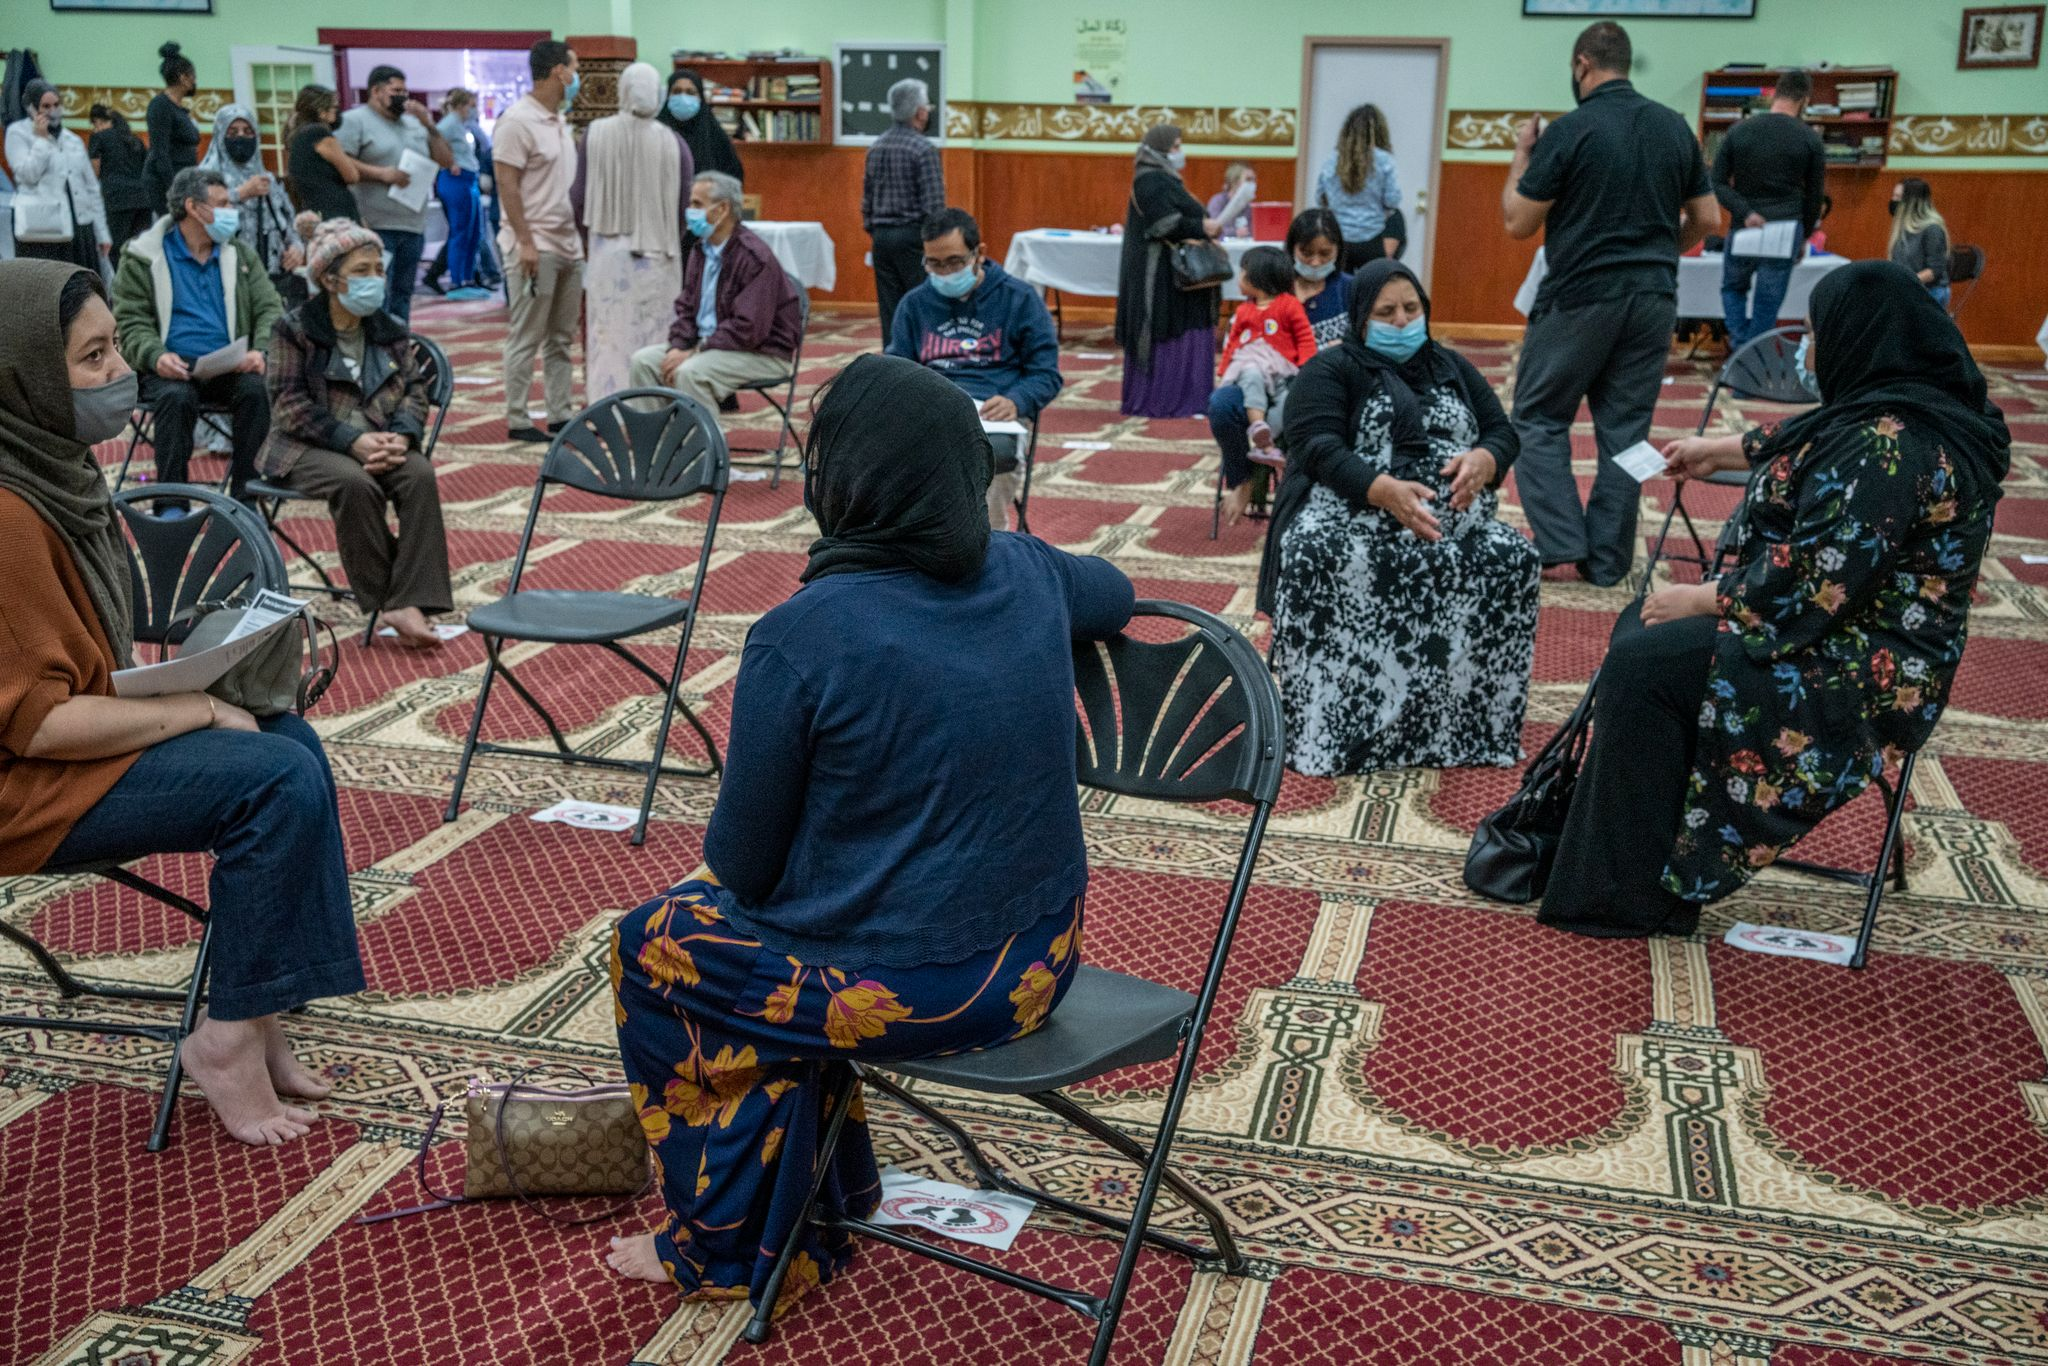 After getting vaccinated, people wait 15 minutes after being vaccinated. About 190 people received vaccinations March 11 at the Salahadden Center and Mosque. (Photo: John Partipilo)